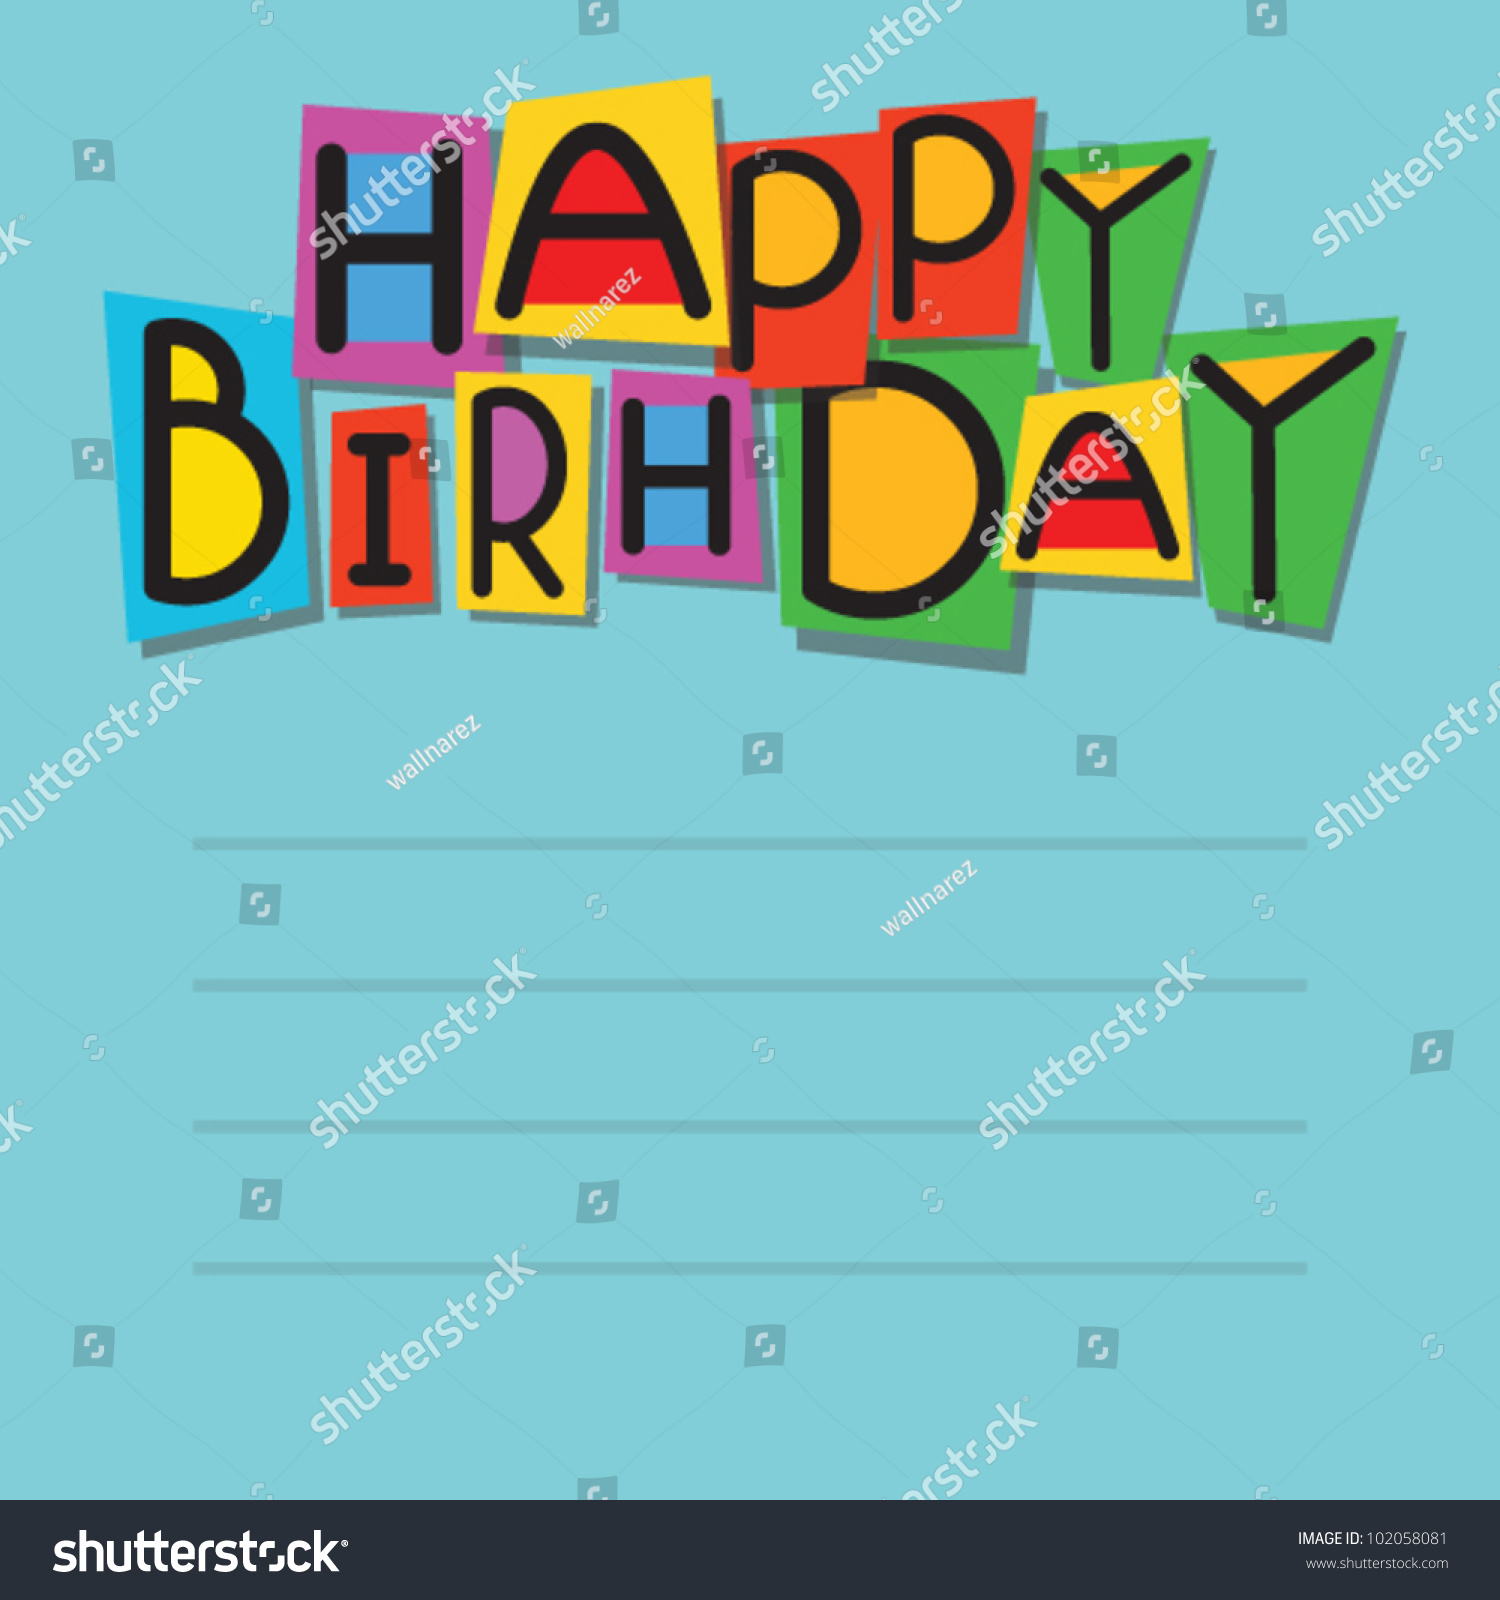 Happy Birthday Cards Greeting Card Stock Vector Royalty Free